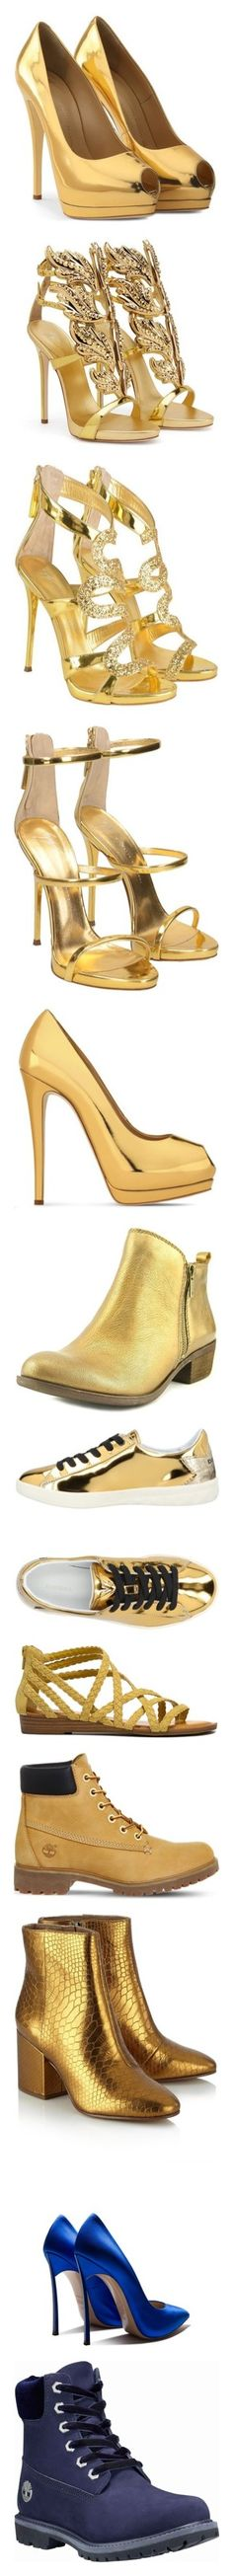 """""""Navy and Gold"""" by luck-number7 ❤ liked on Polyvore featuring shoes, pumps, heels, black pumps, black patent leather shoes, high heel platform pumps, black platform shoes, platform shoes, sandals and leather heeled sandals"""